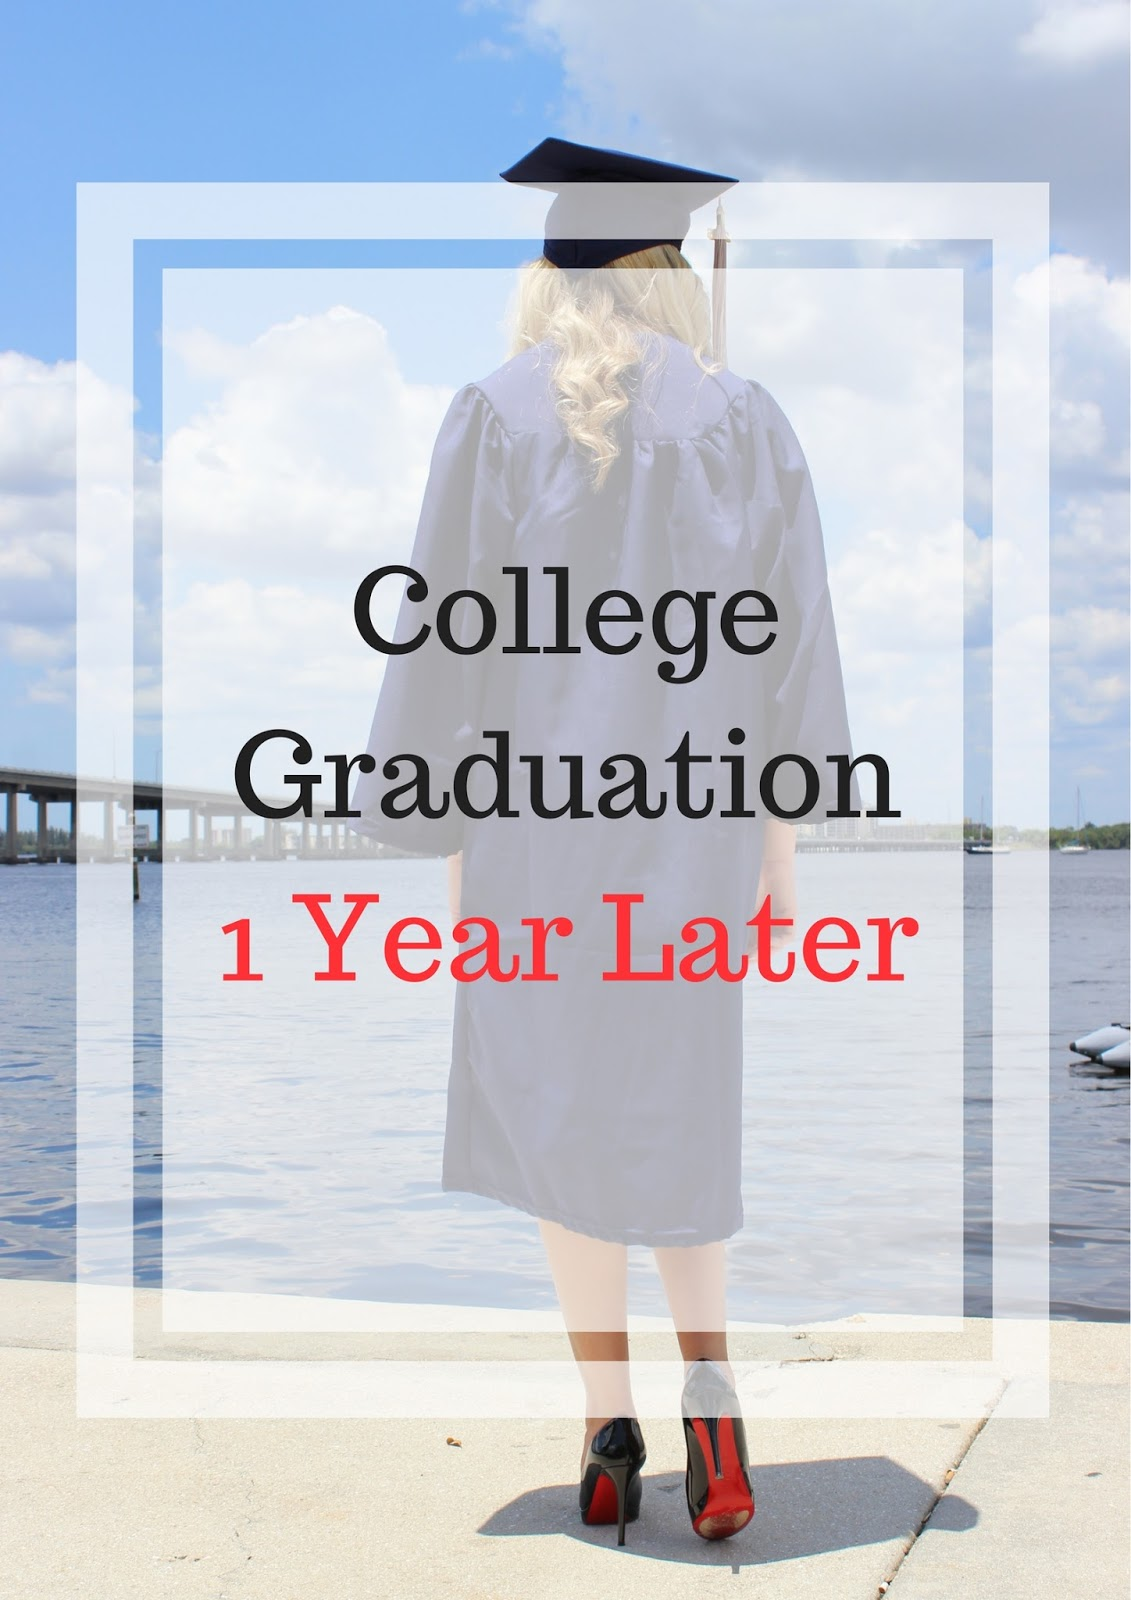 College Graduation: 1 Year Later